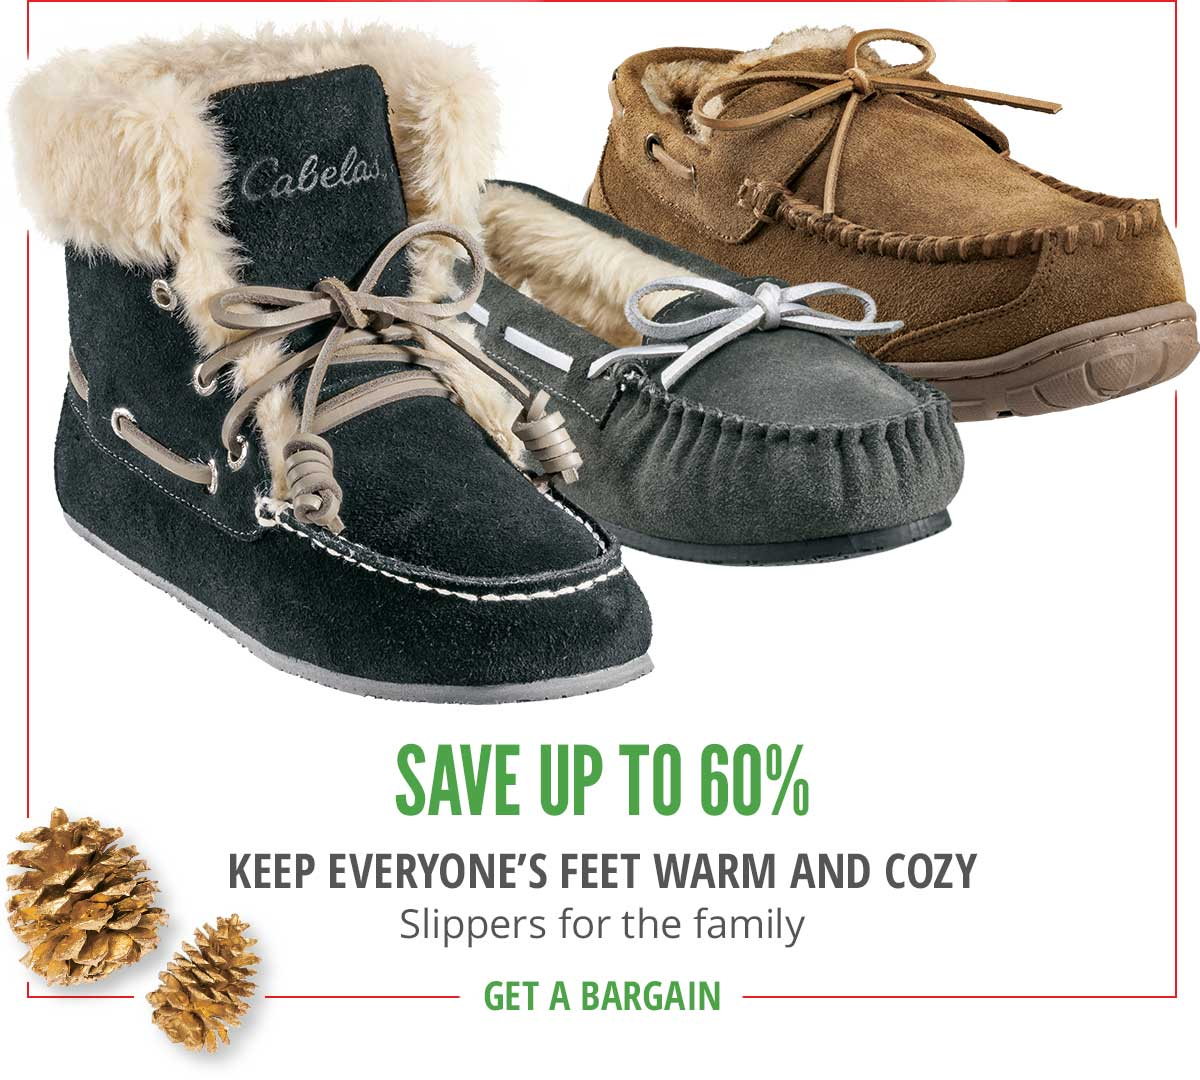 Save Up To 60% And Keep Everyone's Feet Warm And Cozy